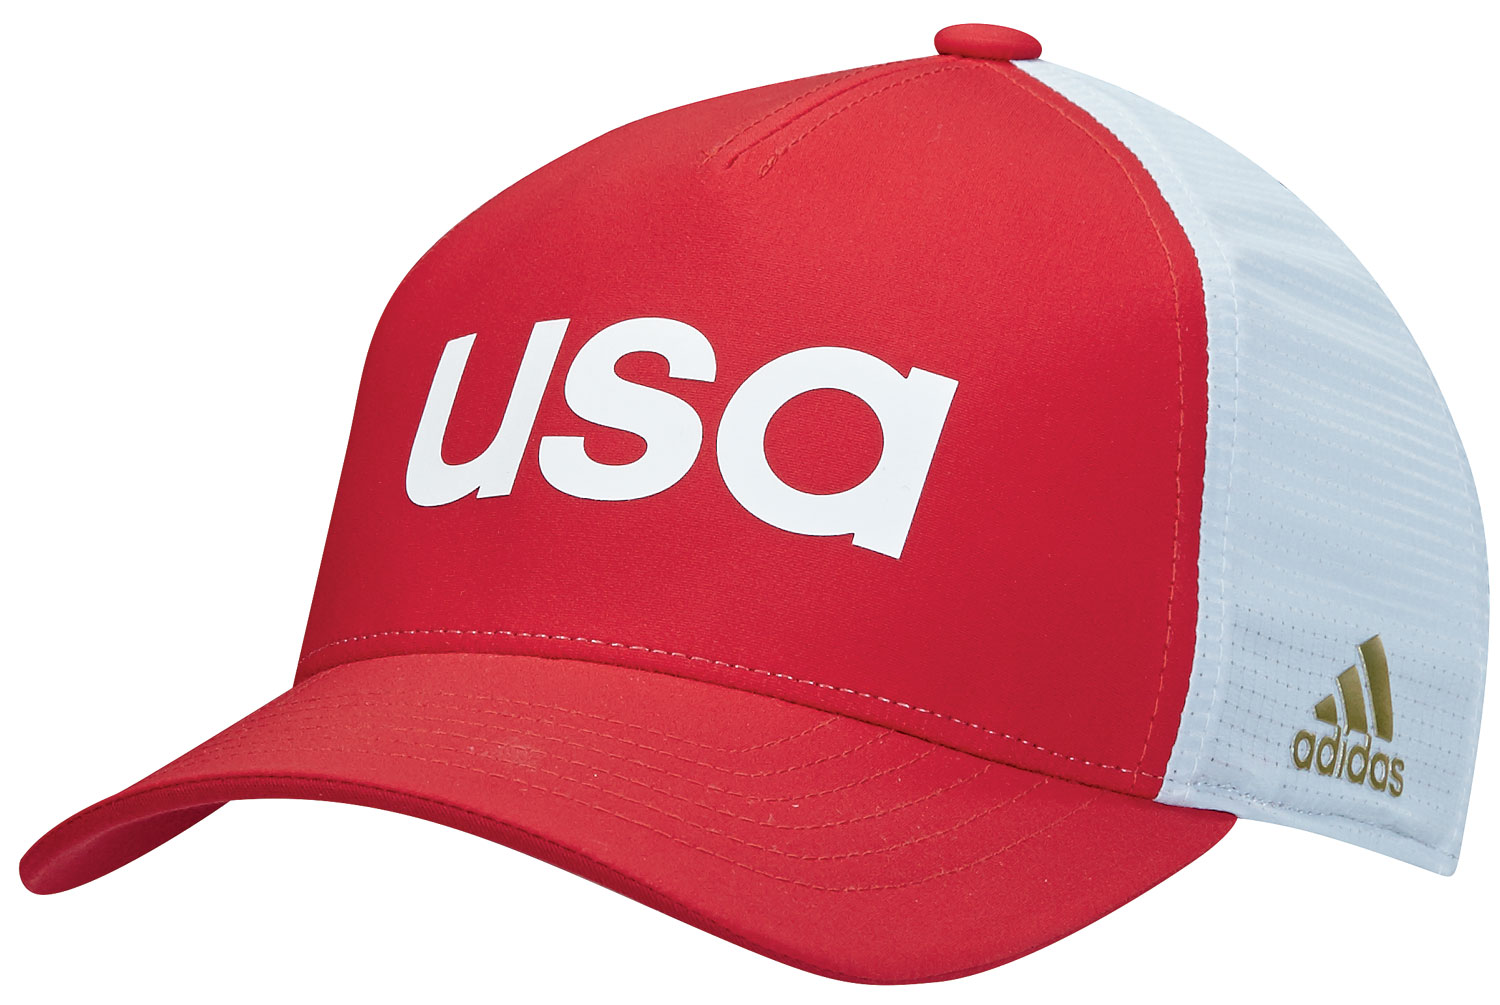 New Adidas Golf 2016 Olympic USA Climacool Flexfit Fitted Cap - Red ... 8fdbd6cd865